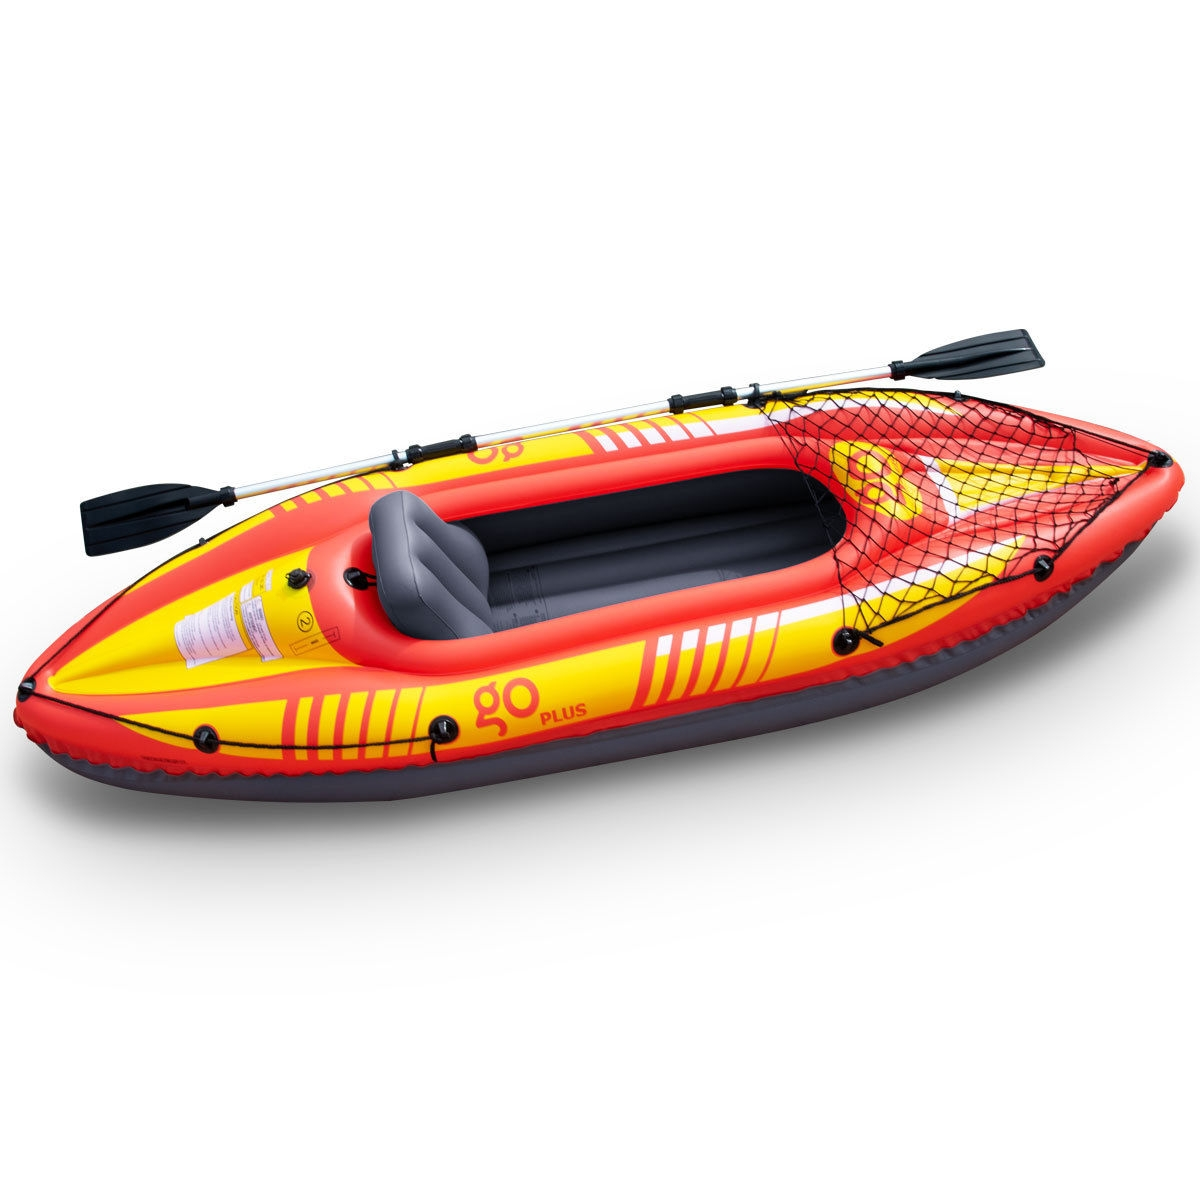 Goplus 1-Person Inflatable Canoe Boat Kayak Set with Oar and Hand Pump